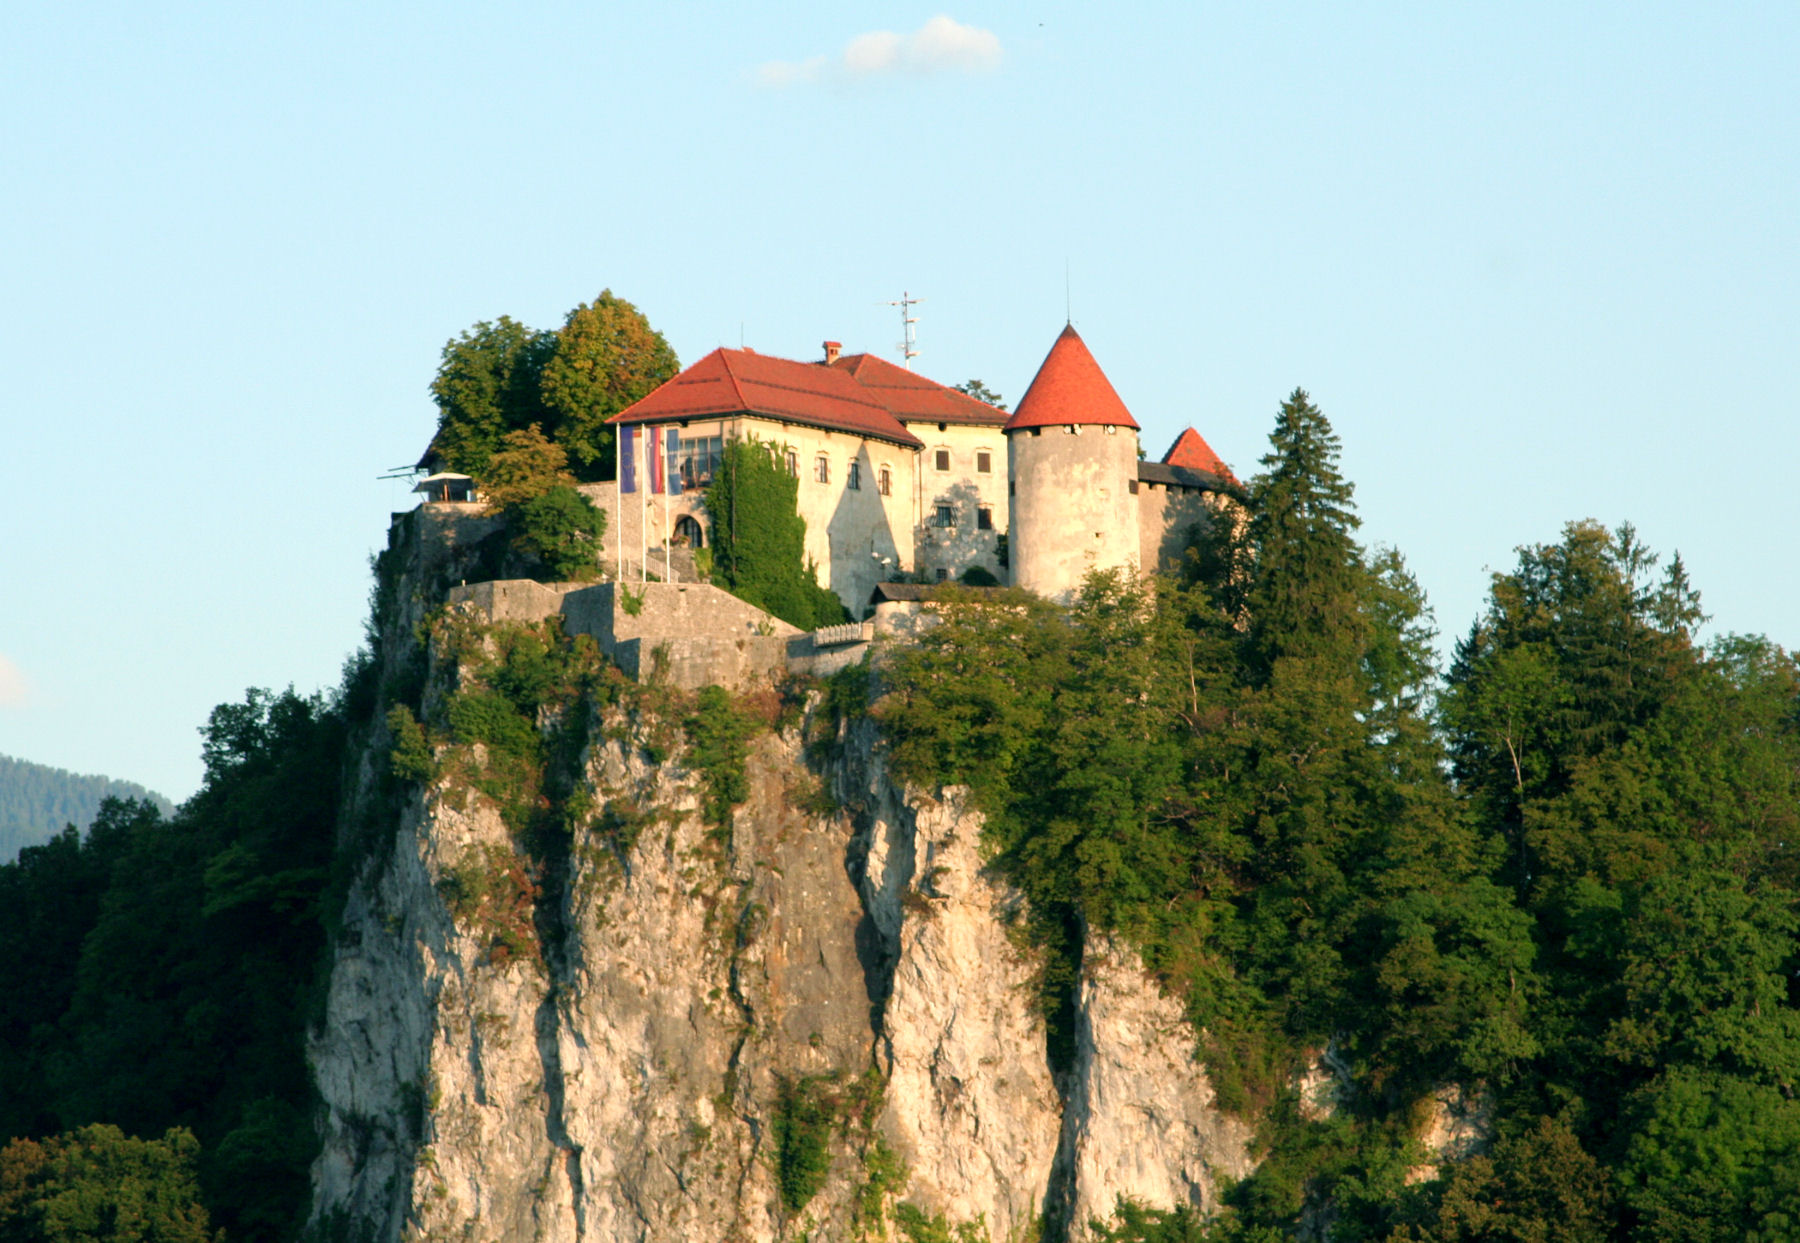 Bled Castle looks pretty small from afar, but it's pretty big when you're closer